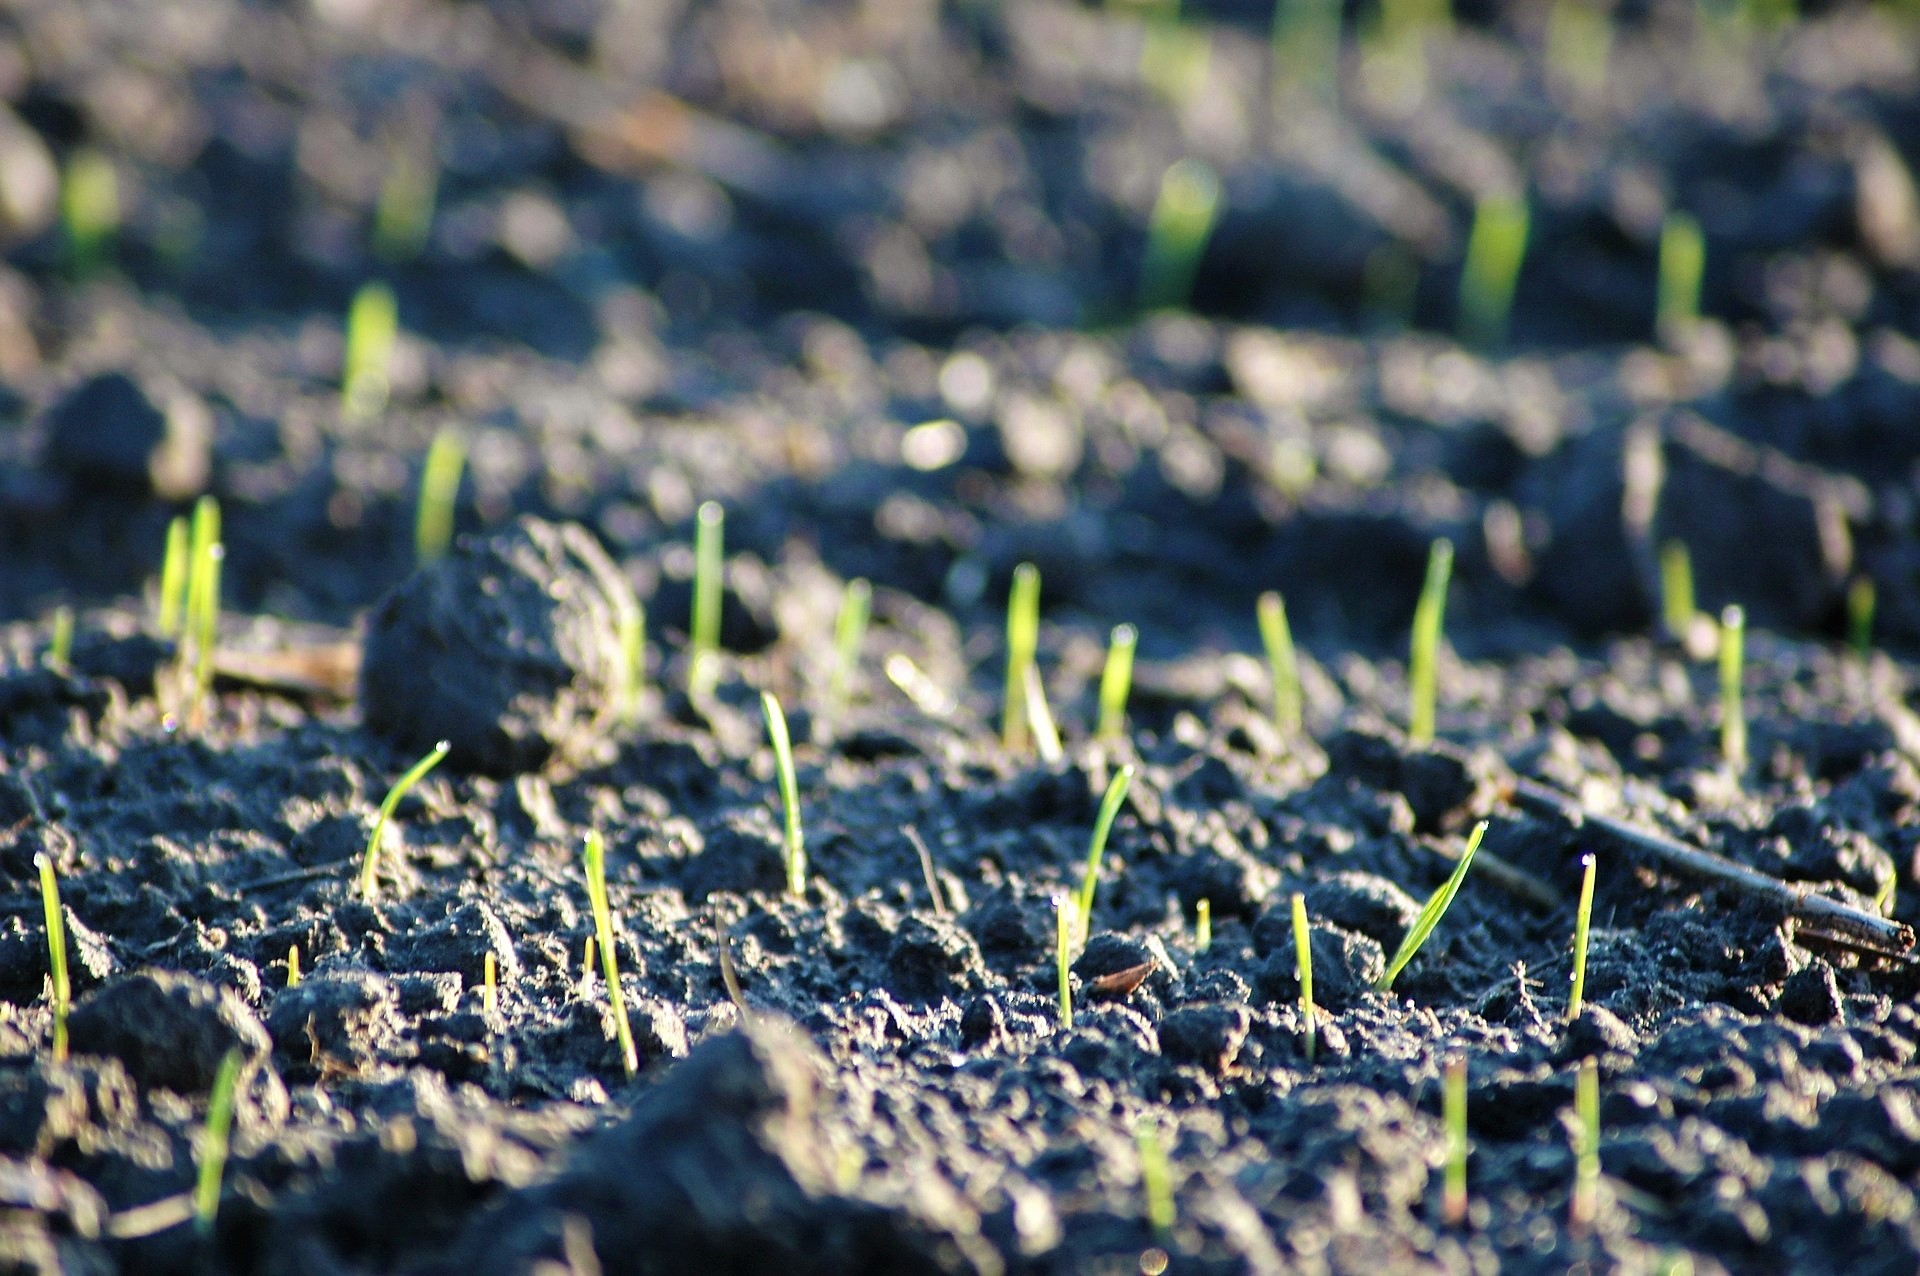 Designing Microbial Communities to Help Plants Battle Nutritional Stress